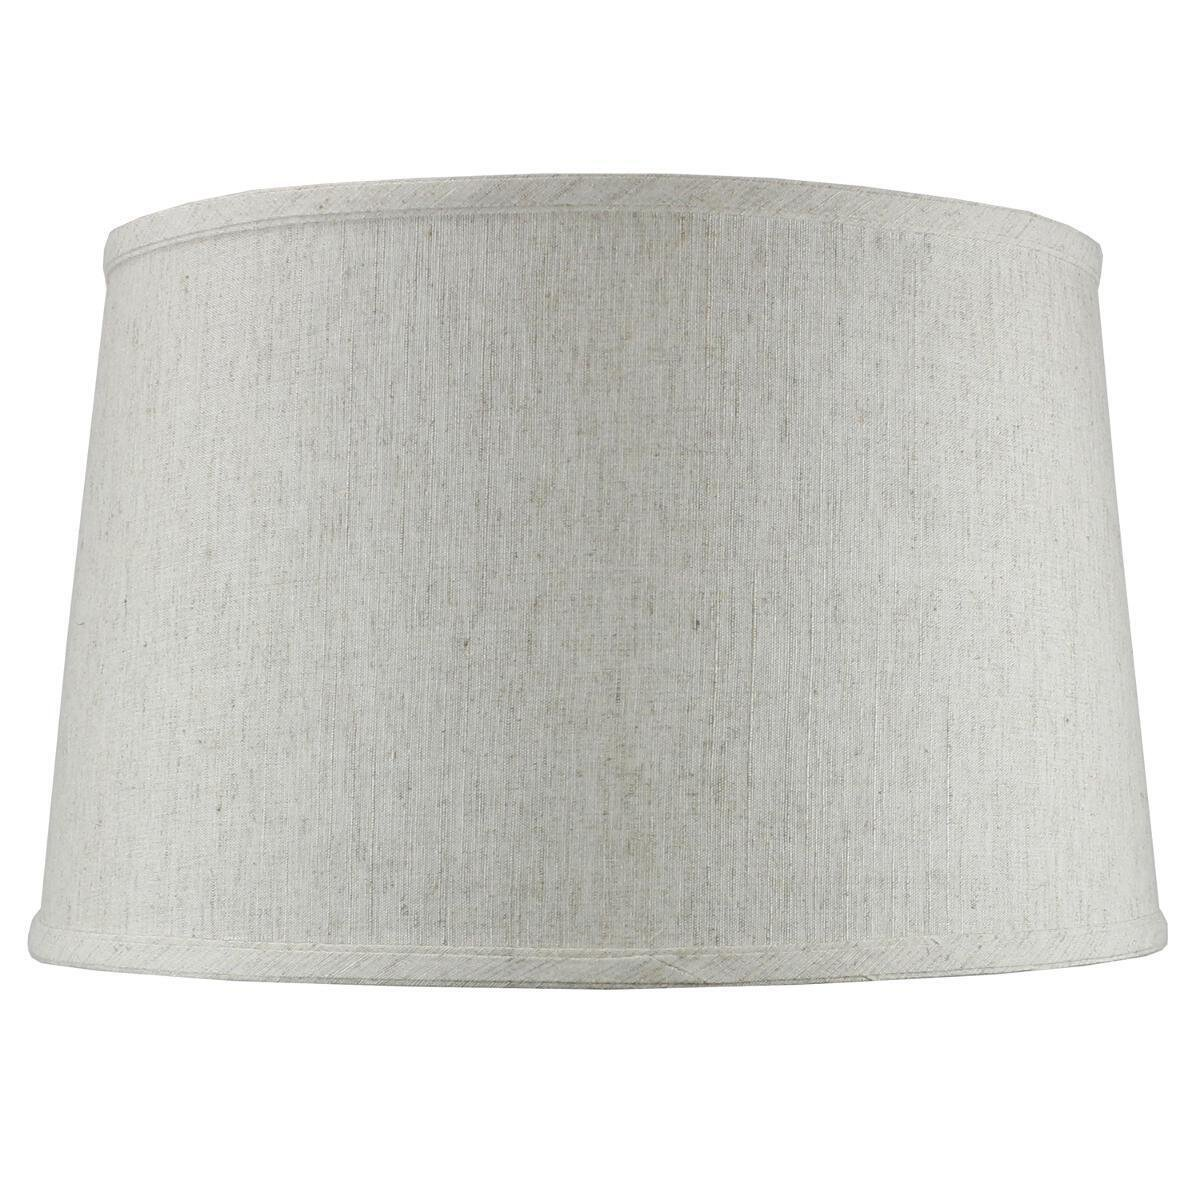 14x16x10 Shallow Drum Hard Back Textured Oatmeal Lampshade with Brass Spider fitter By Home Concept - Perfect for table and Desk lamps - Large, Off-white